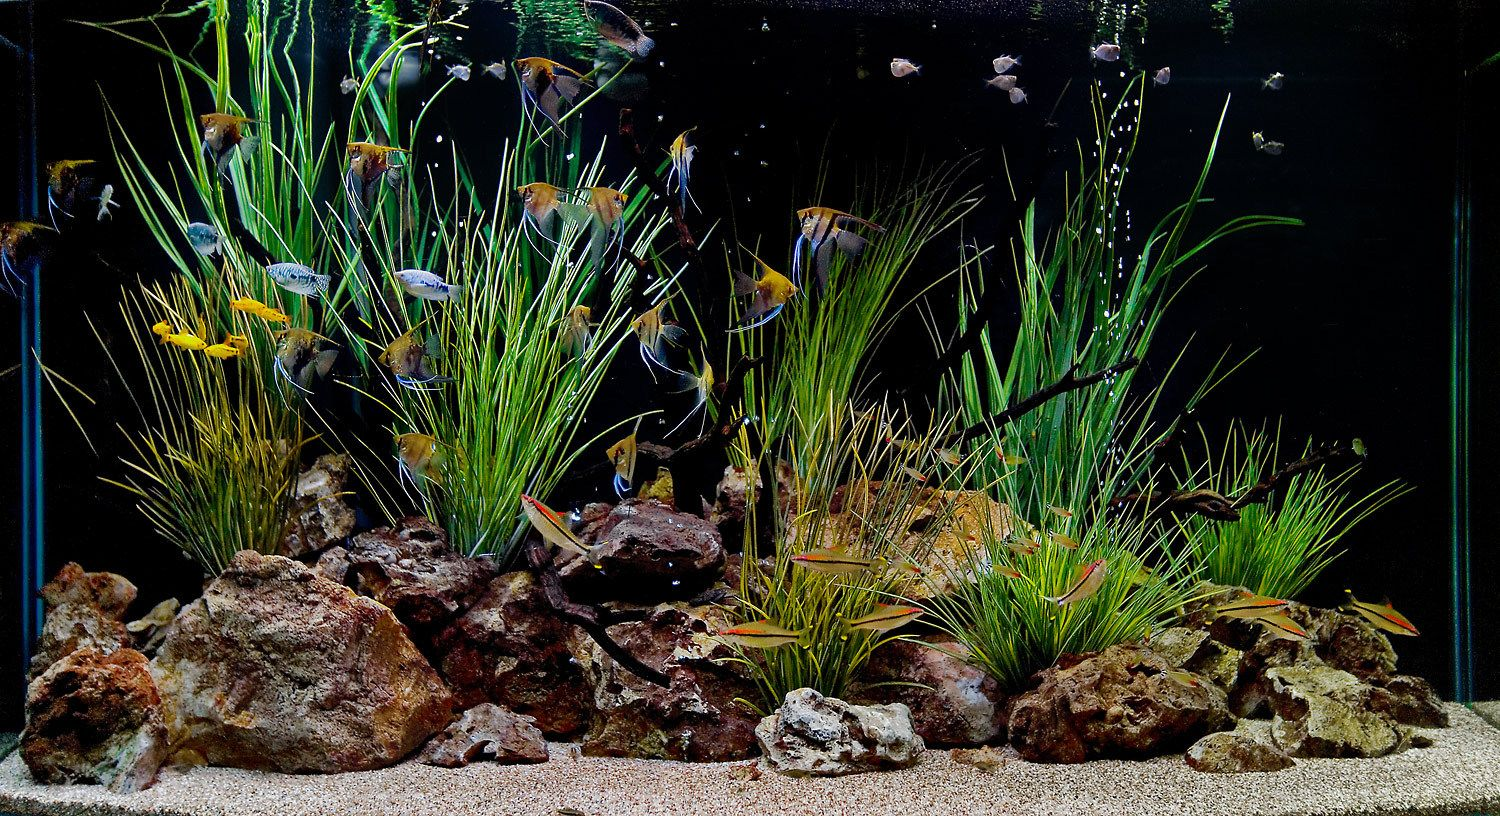 Freshwater aquarium fish photos - Freshwater Aquarium Design Ideas Aquarium Design Group Custom Aquarium Design Installation And Service